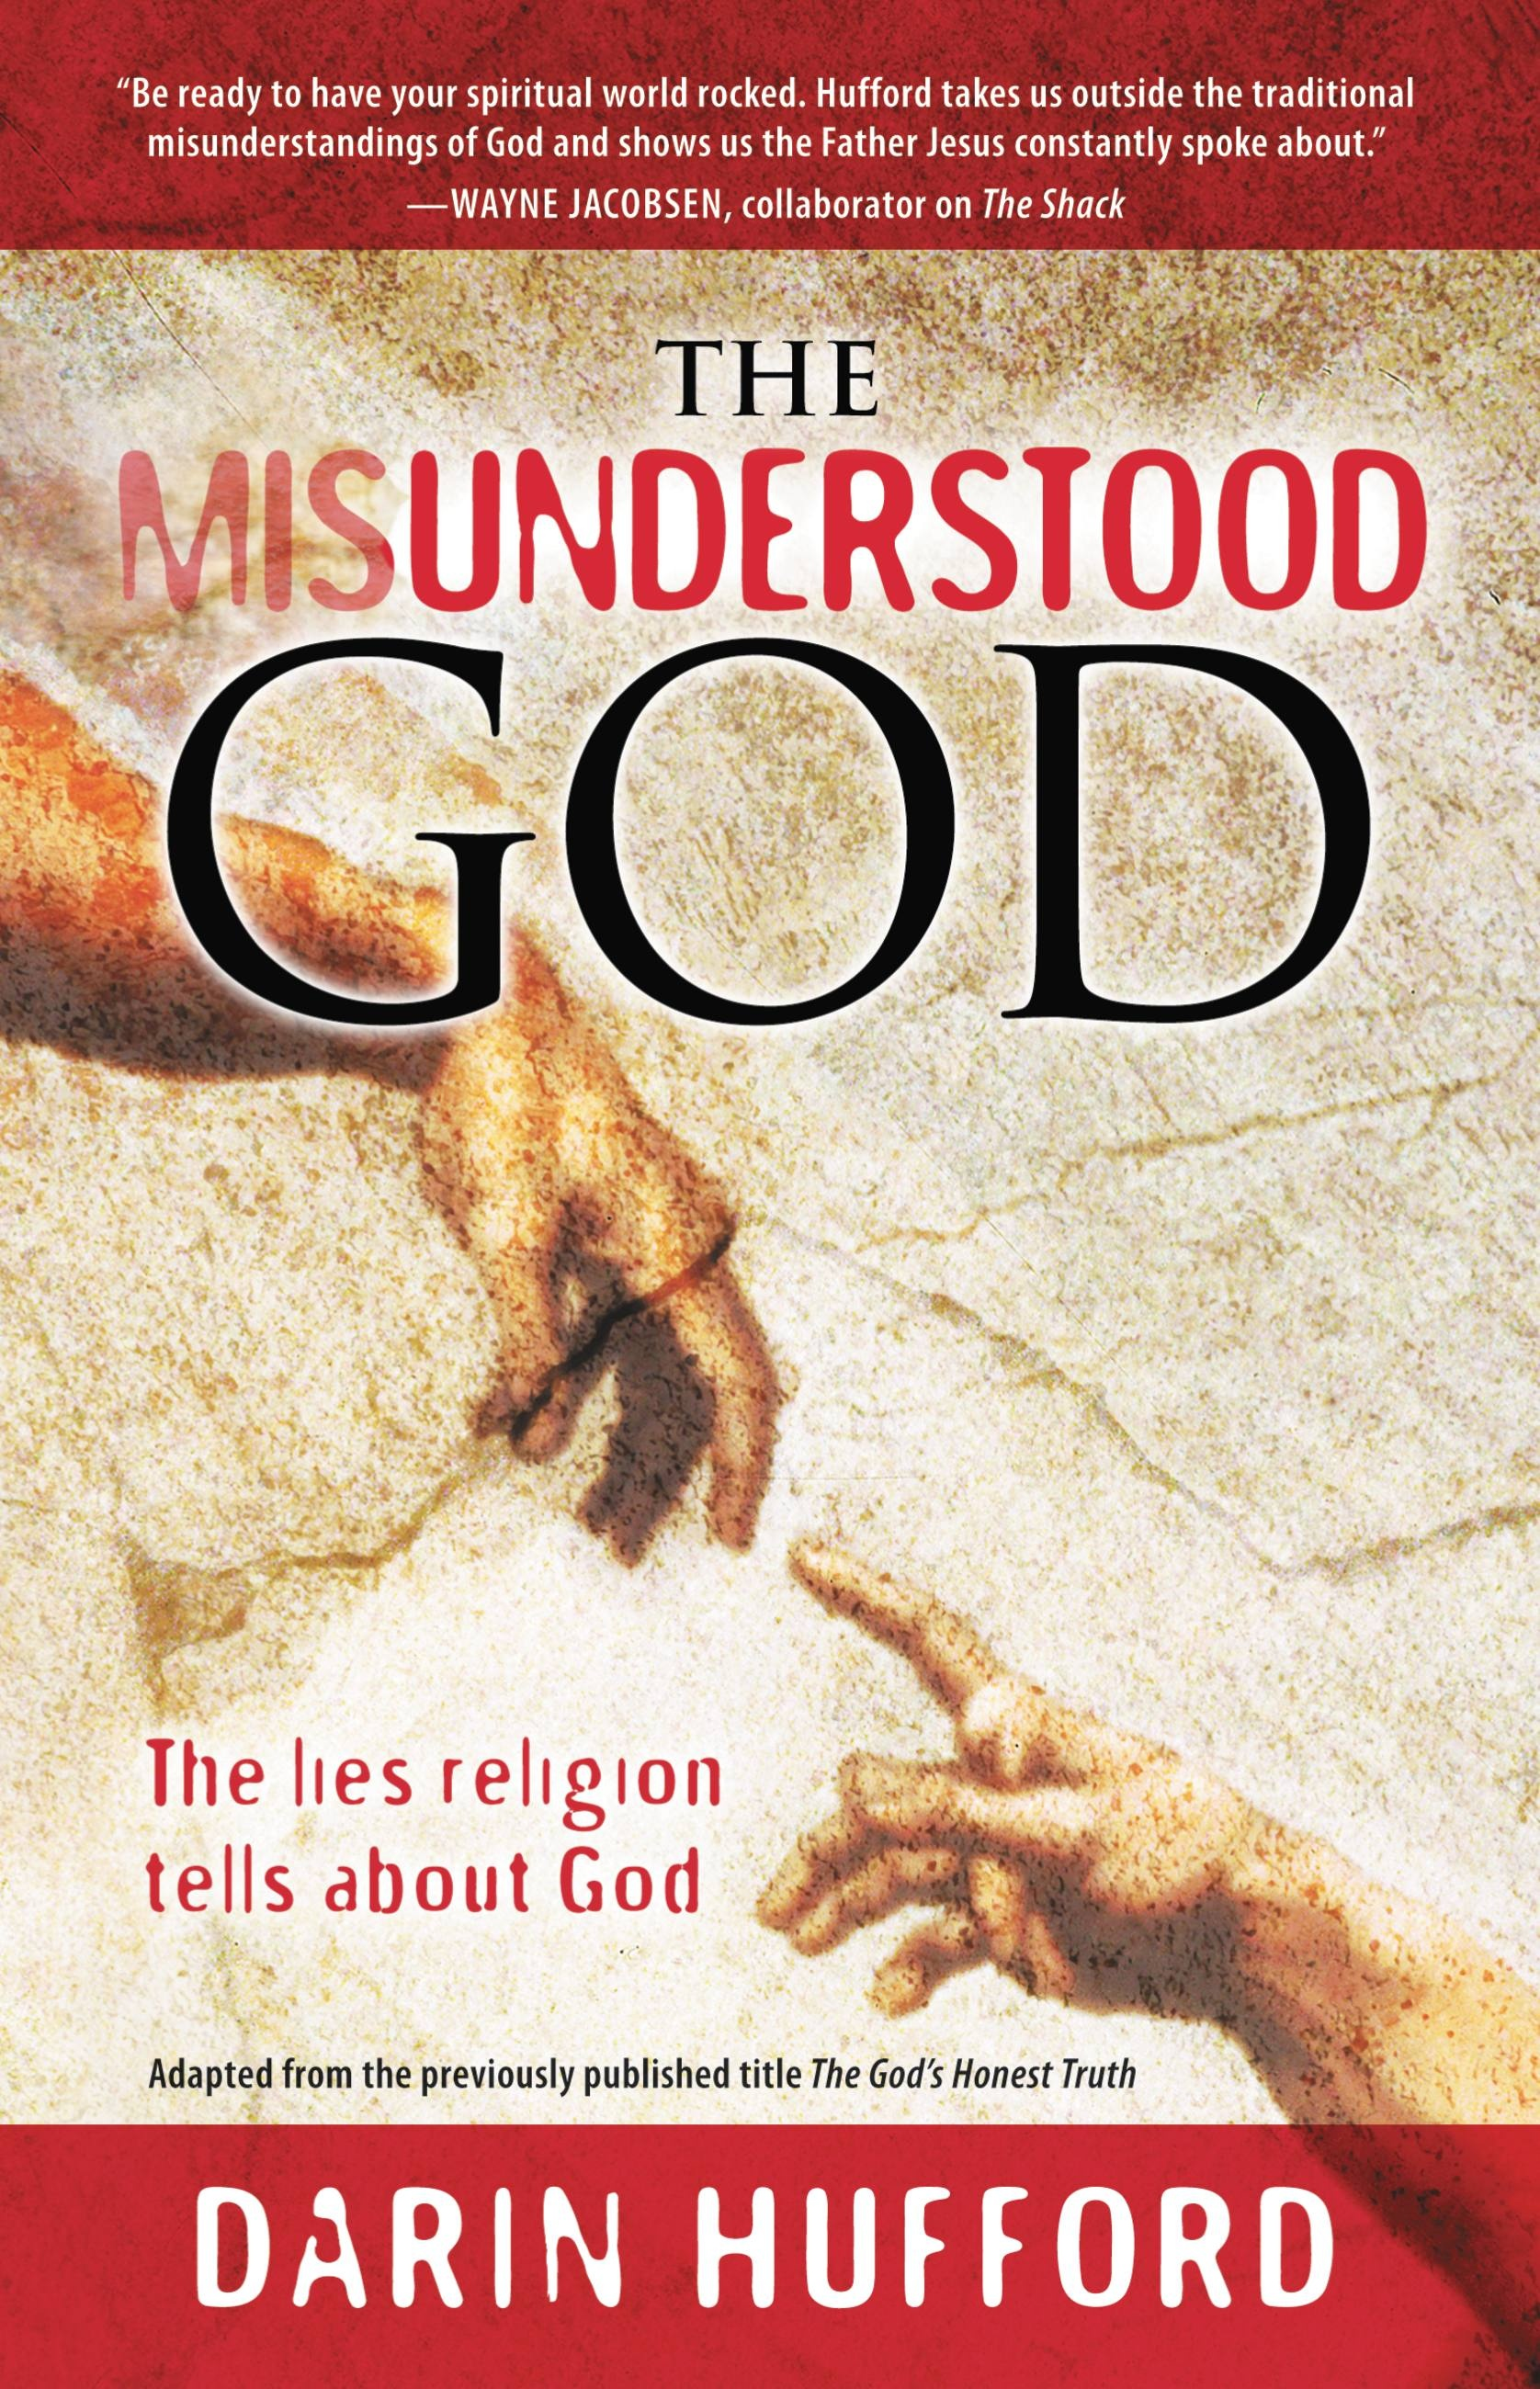 The Misunderstood God